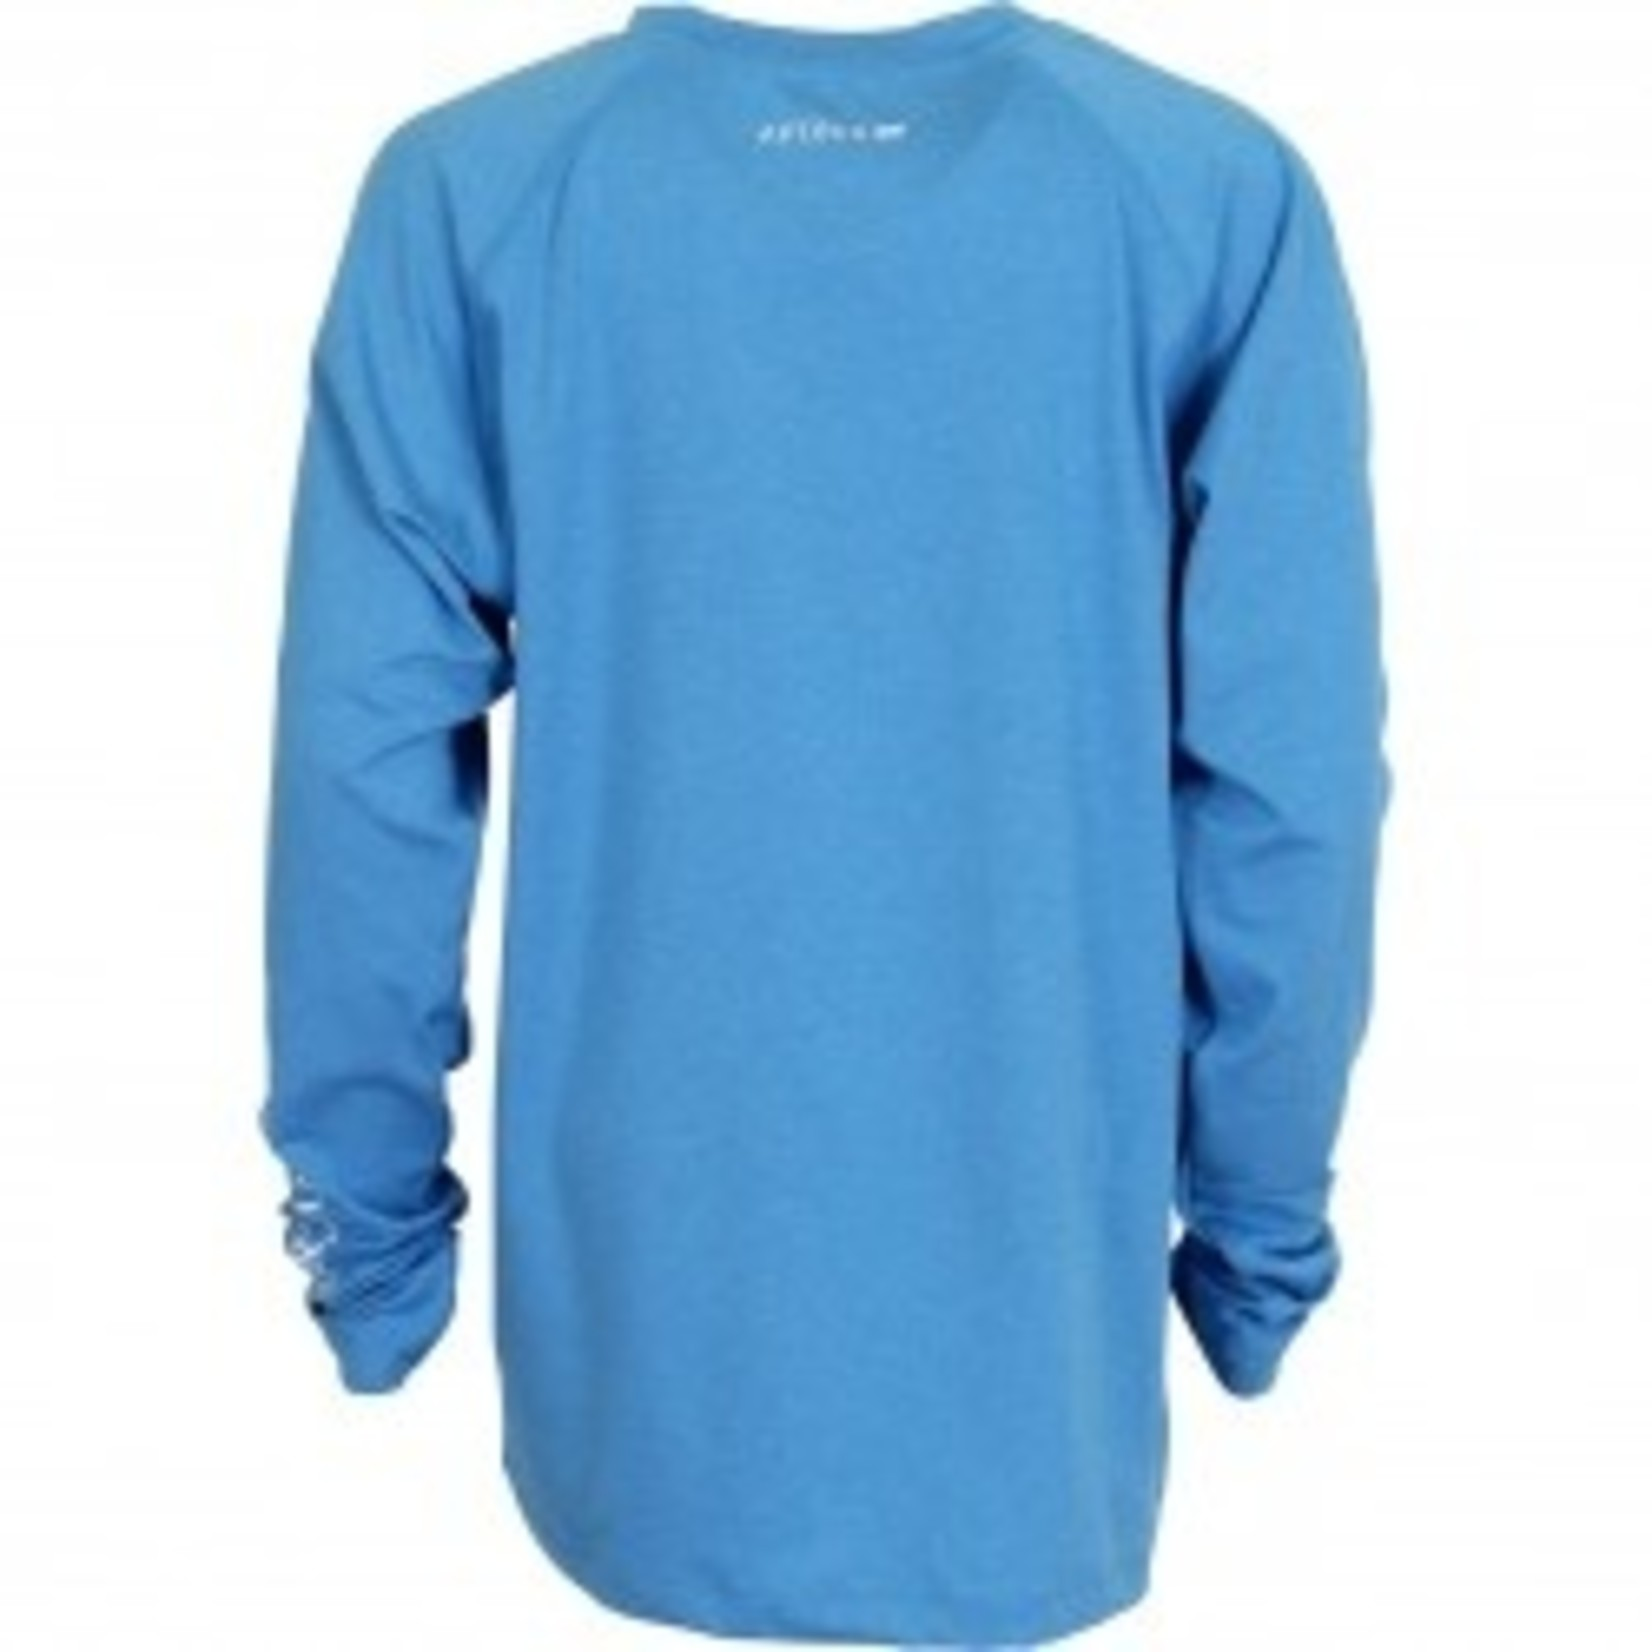 AFTCO YOUTH SAMURAI 2 PERFORMANCE LS SHIRT